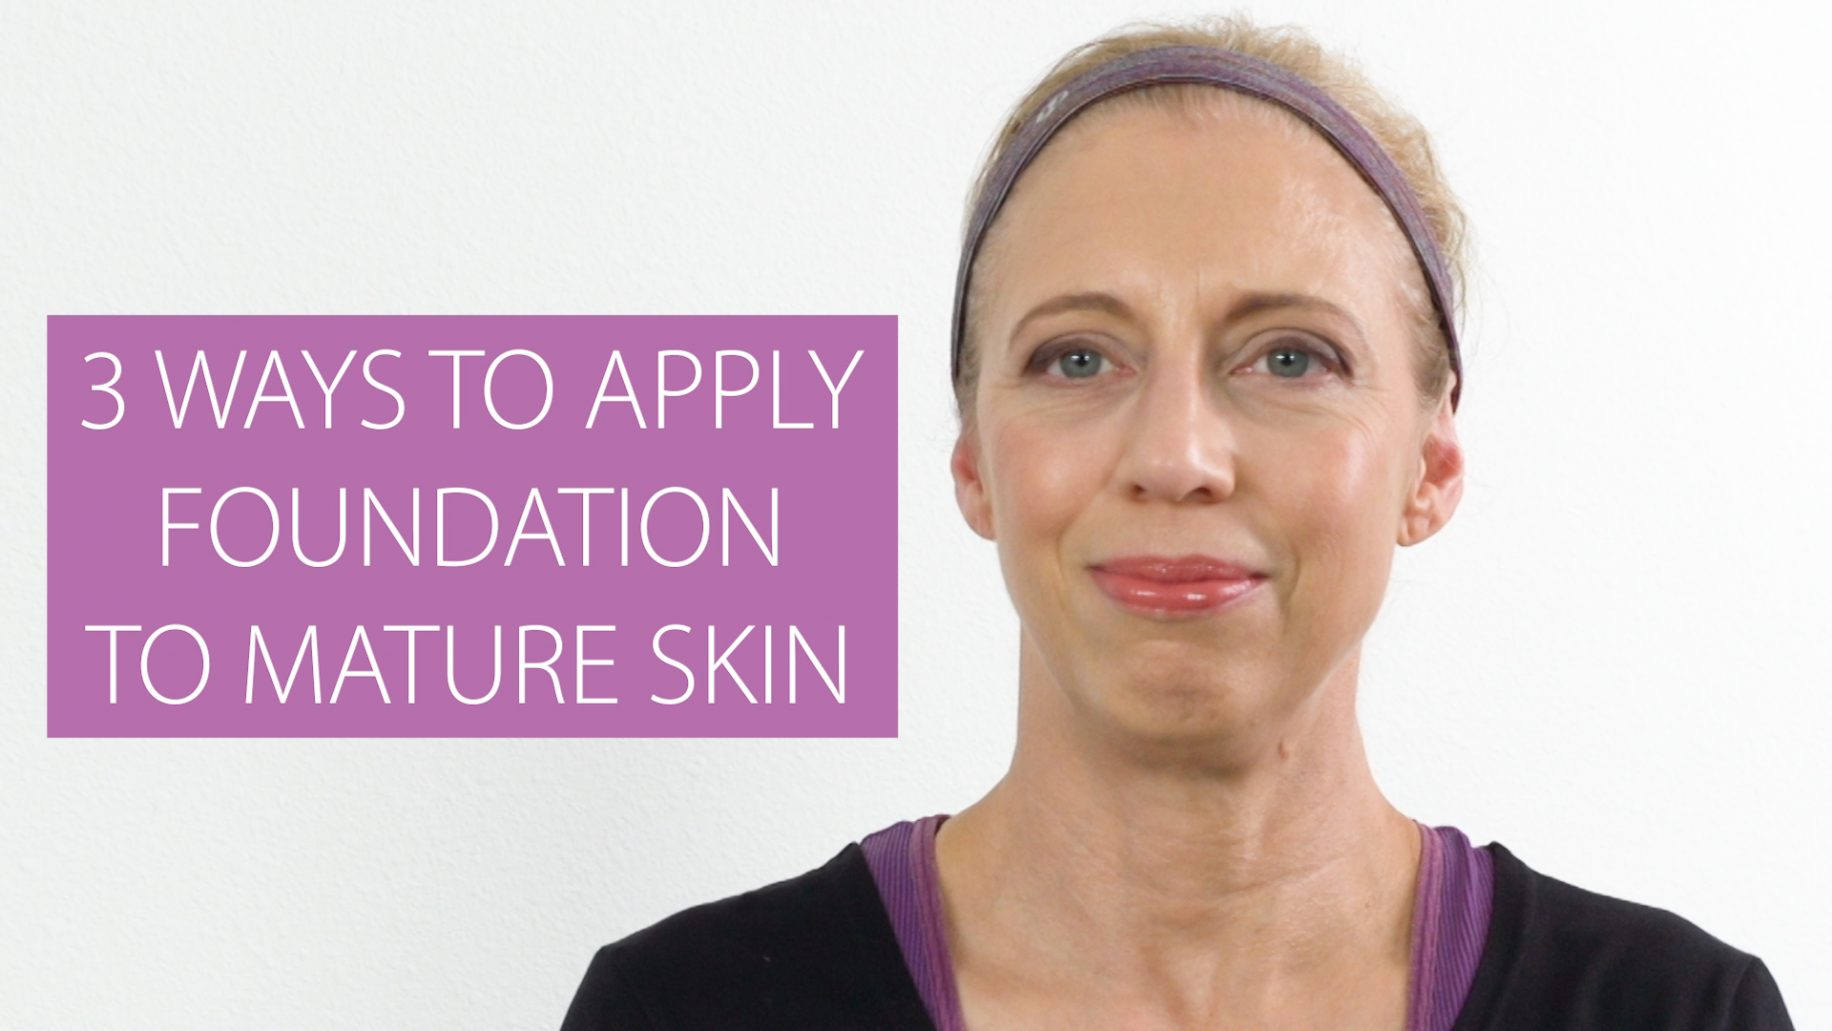 The Best Way To Apply Foundation Prime Women An Online Magazine